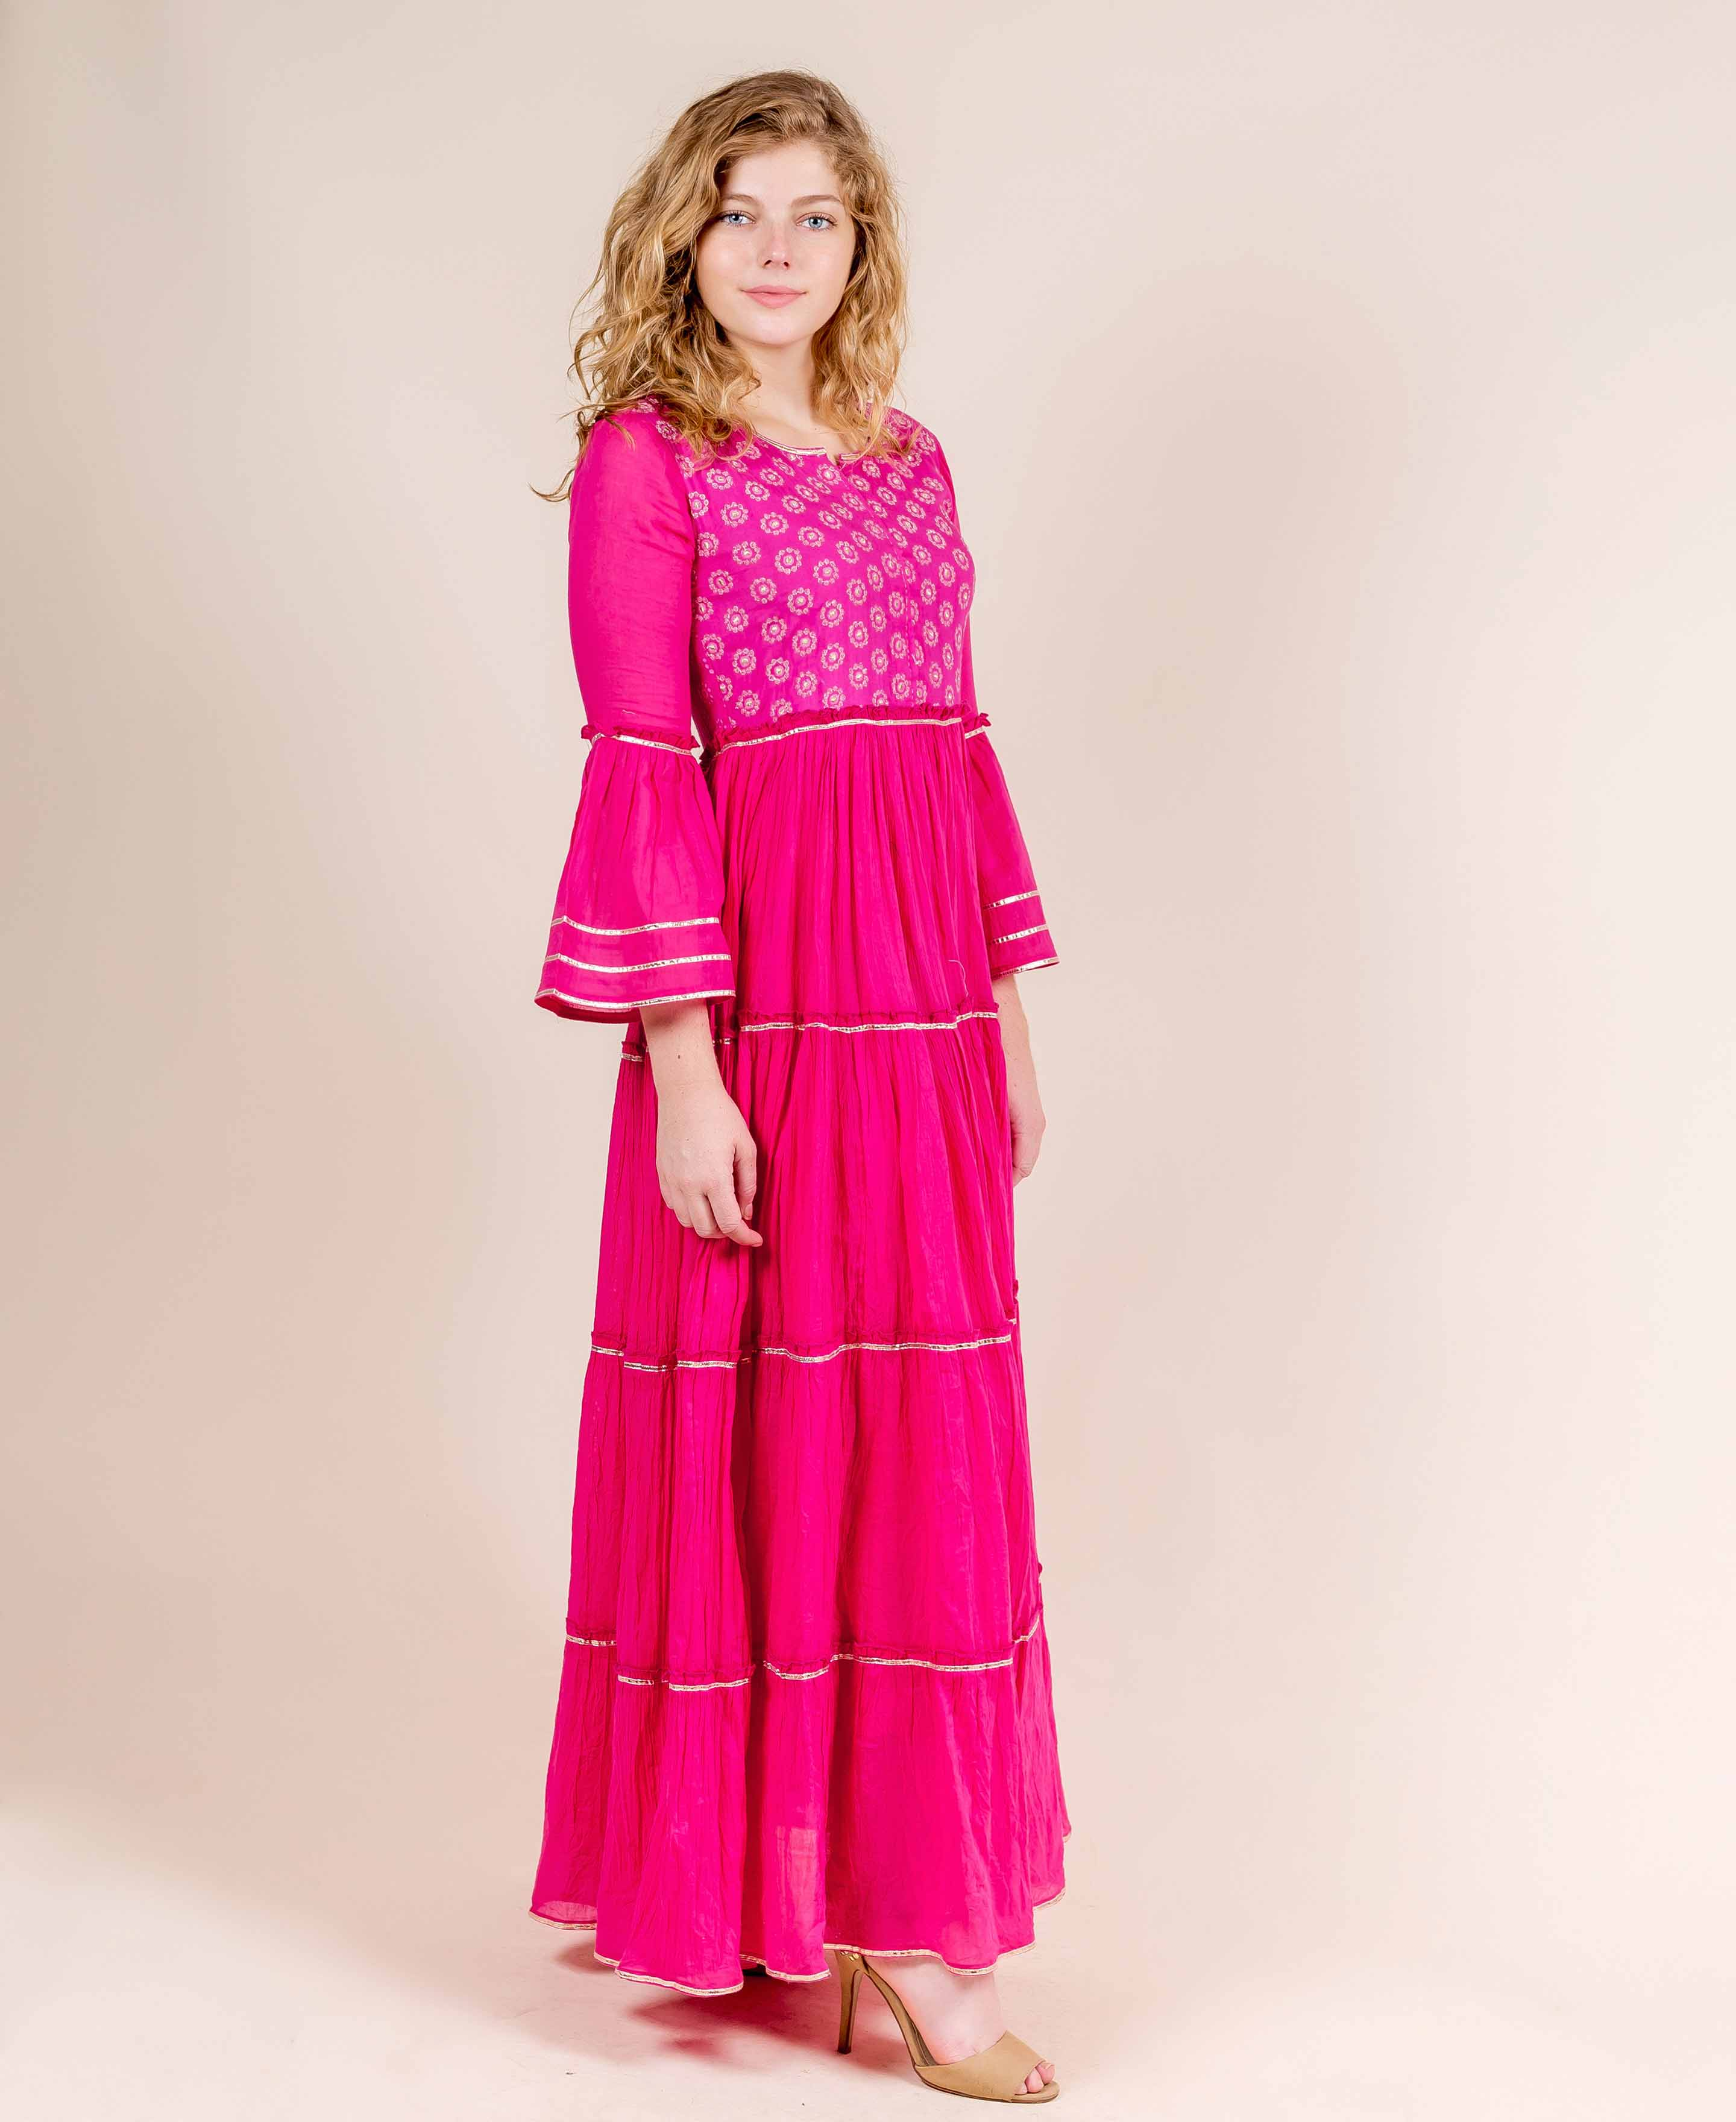 Full Bell Sleeves Cotton Printed Long Designer Dresses online shopping